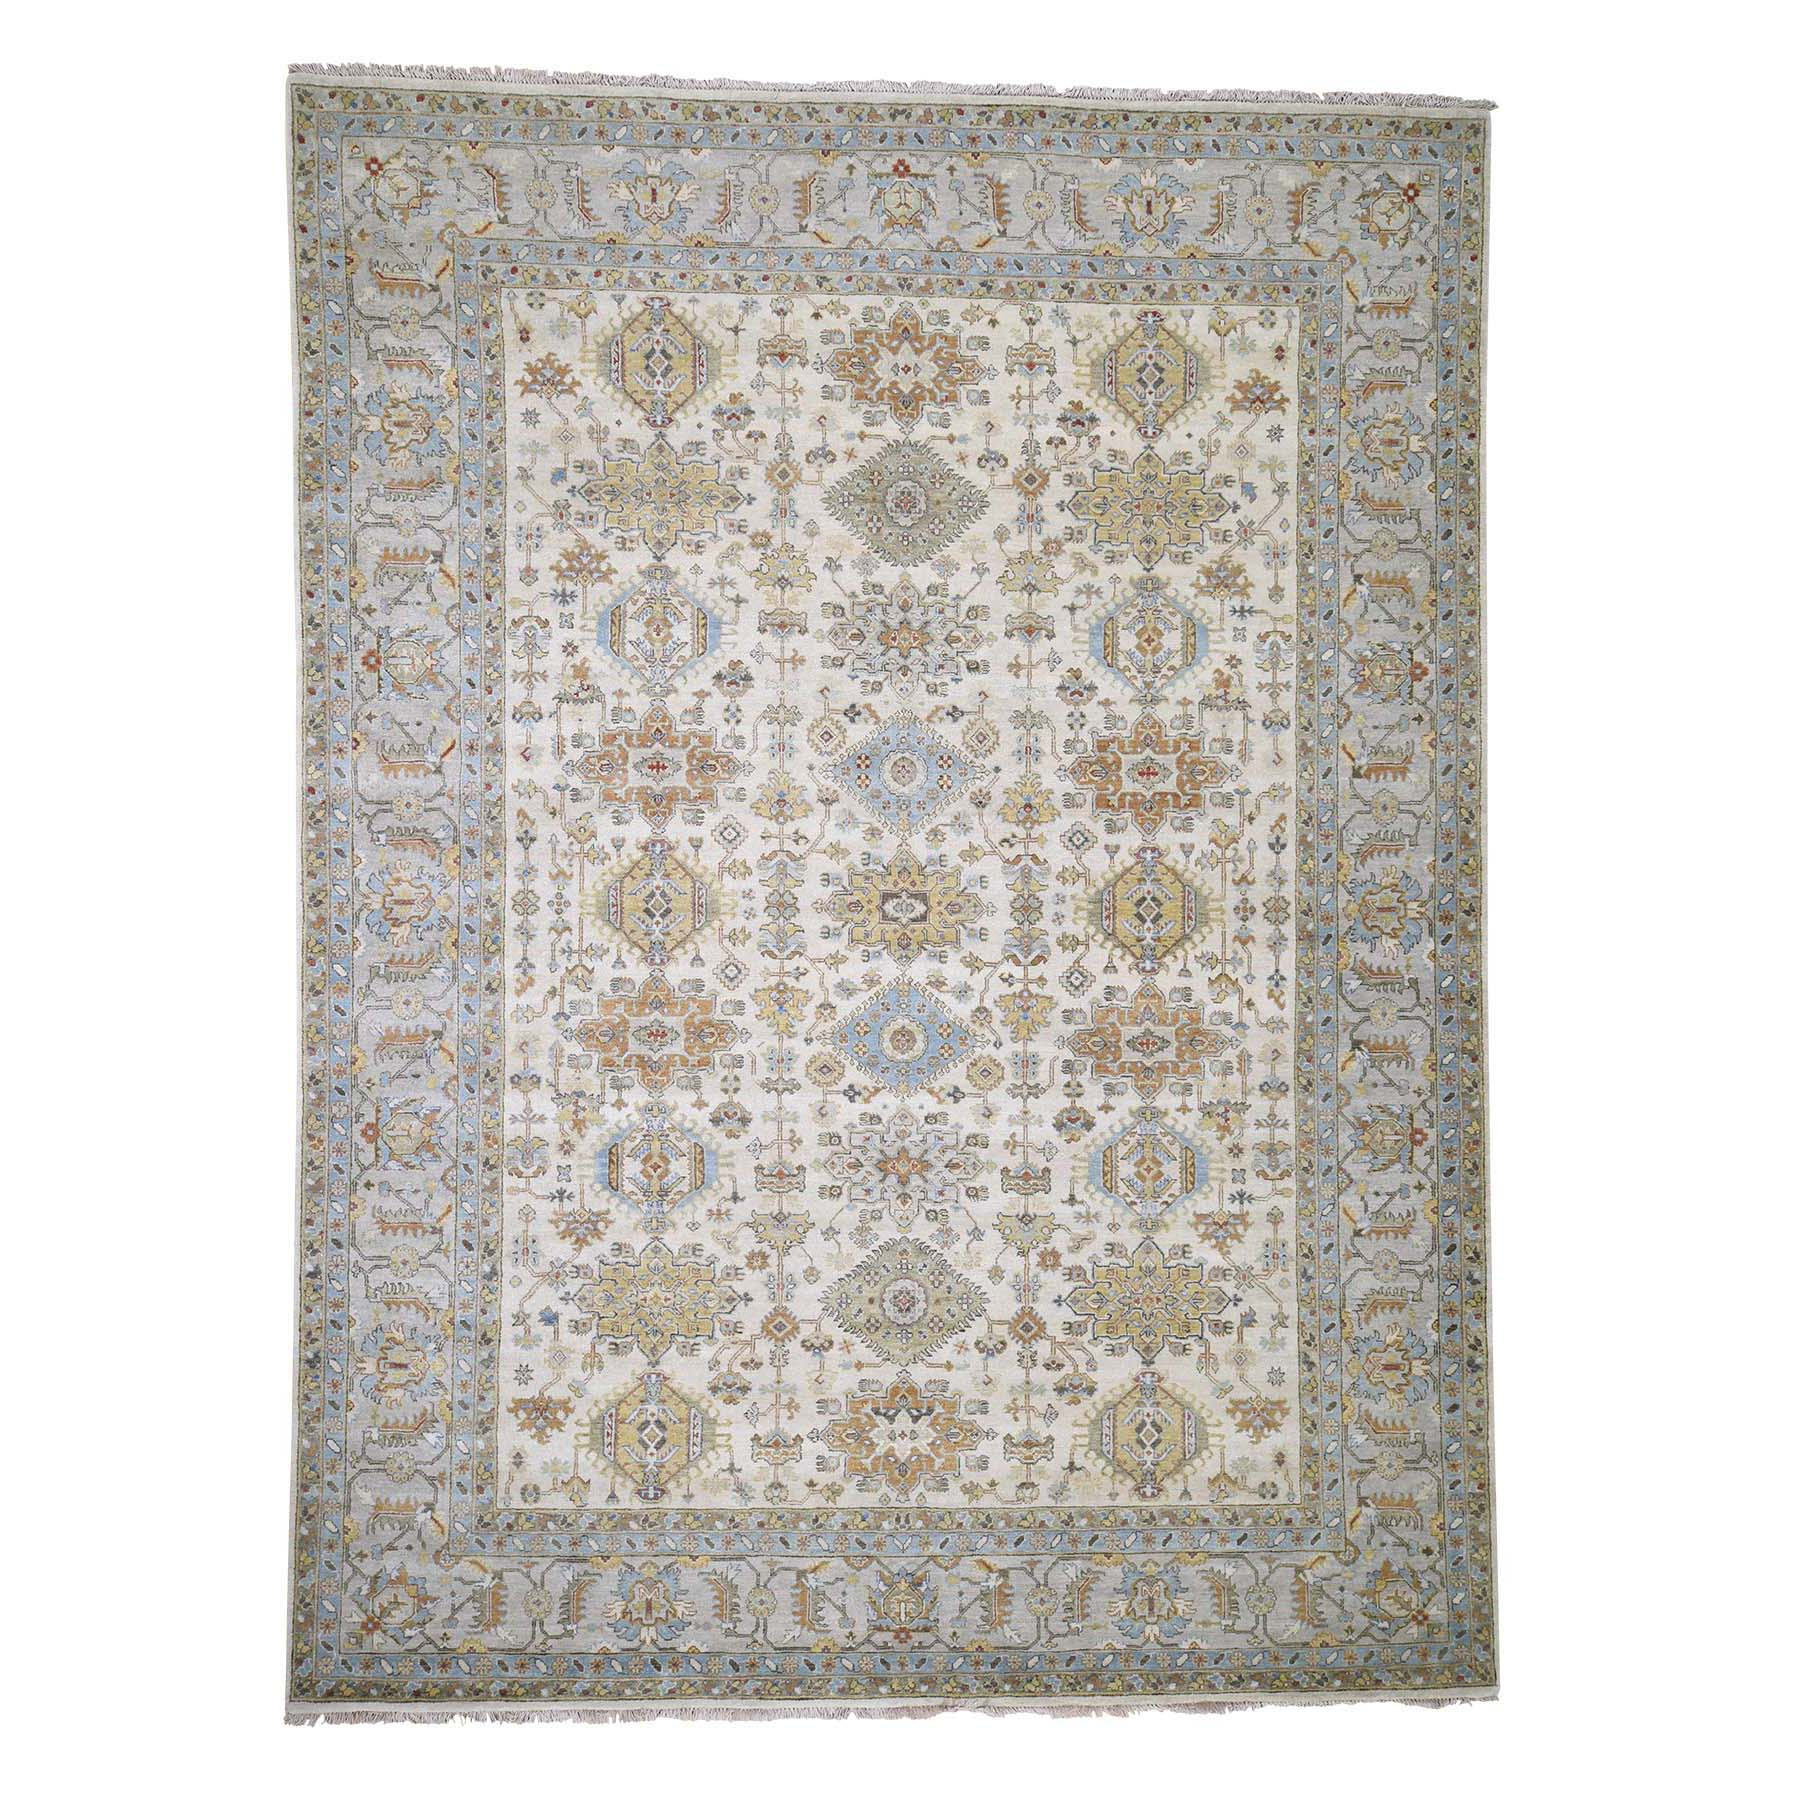 "8'10""x11'10""  Karajeh Design Pure Wool Hand-Knotted Oriental Rug"